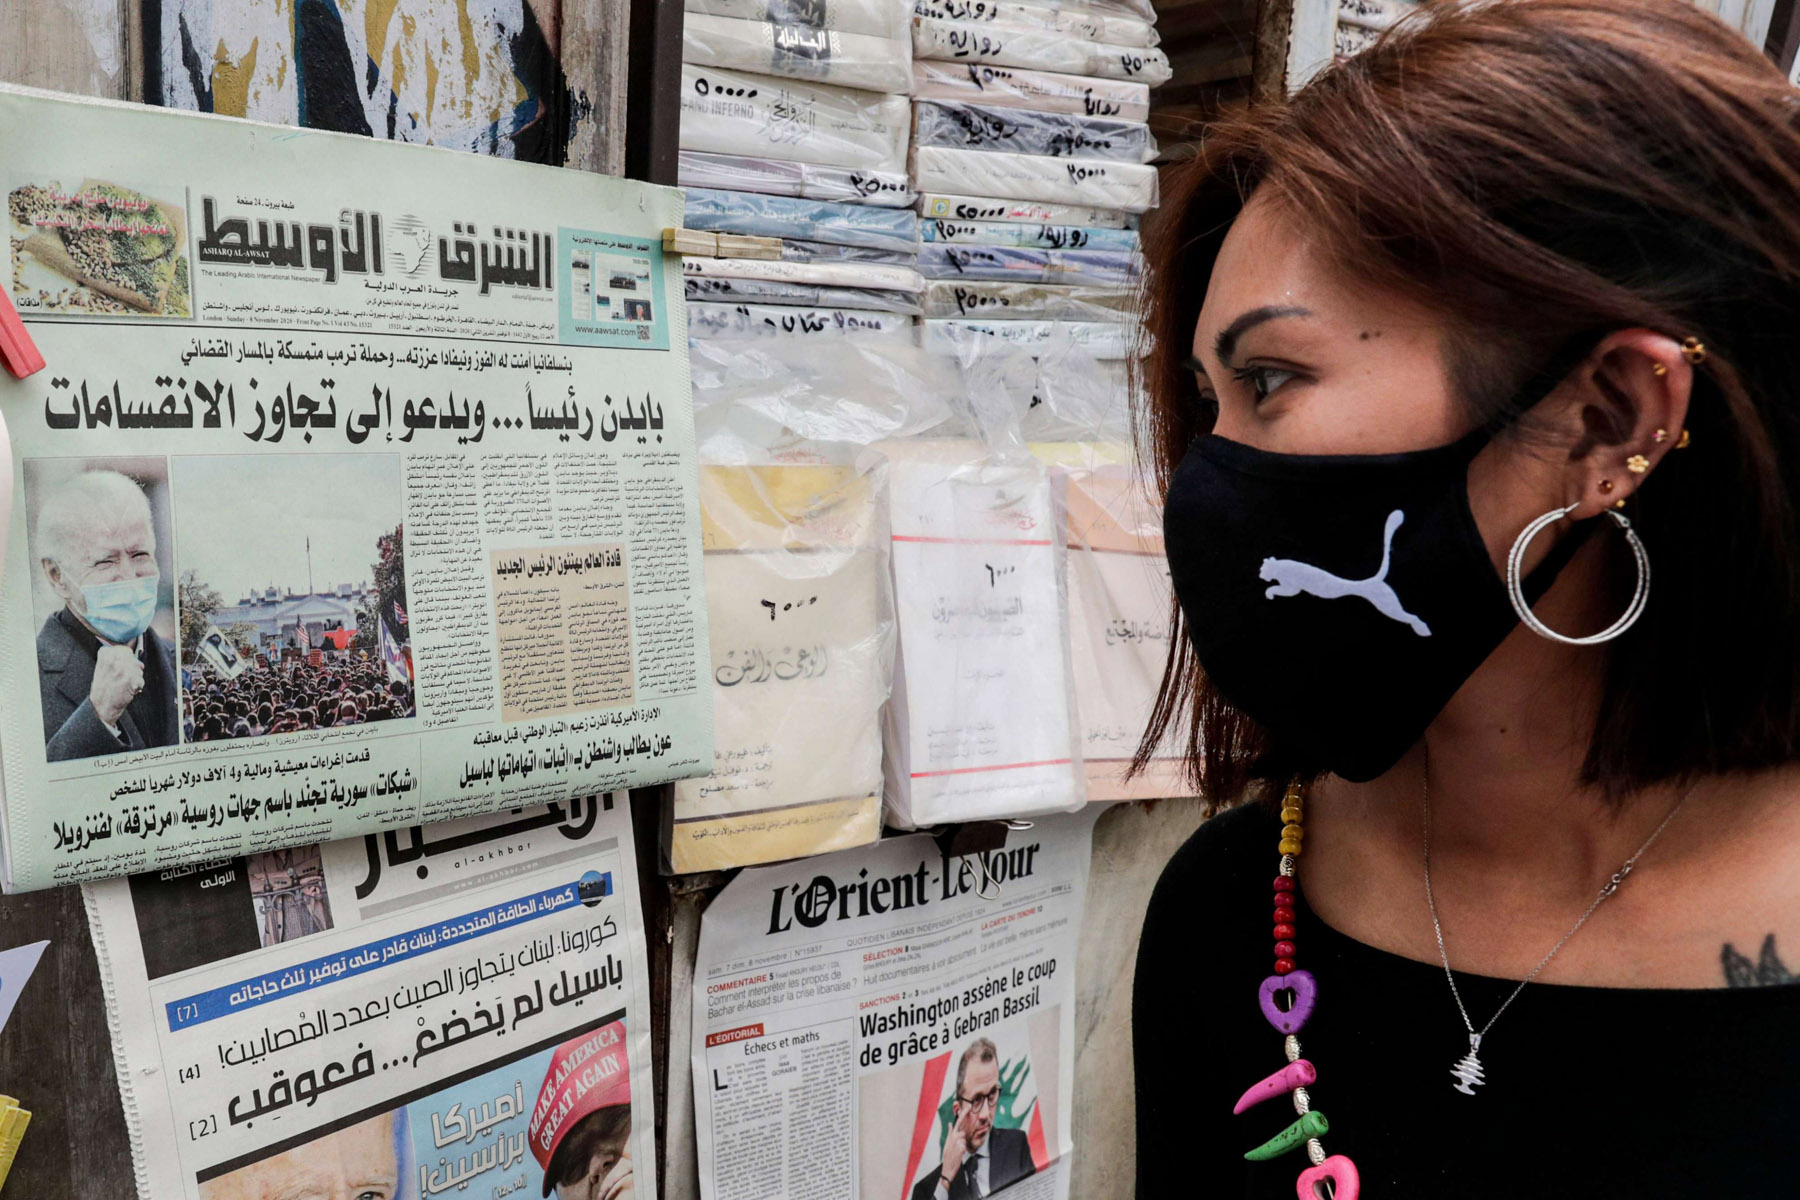 A woman looks at newspaper headlines after the 2020 US election results, at a news stand in Beirut on November 8, 2020.  AFP